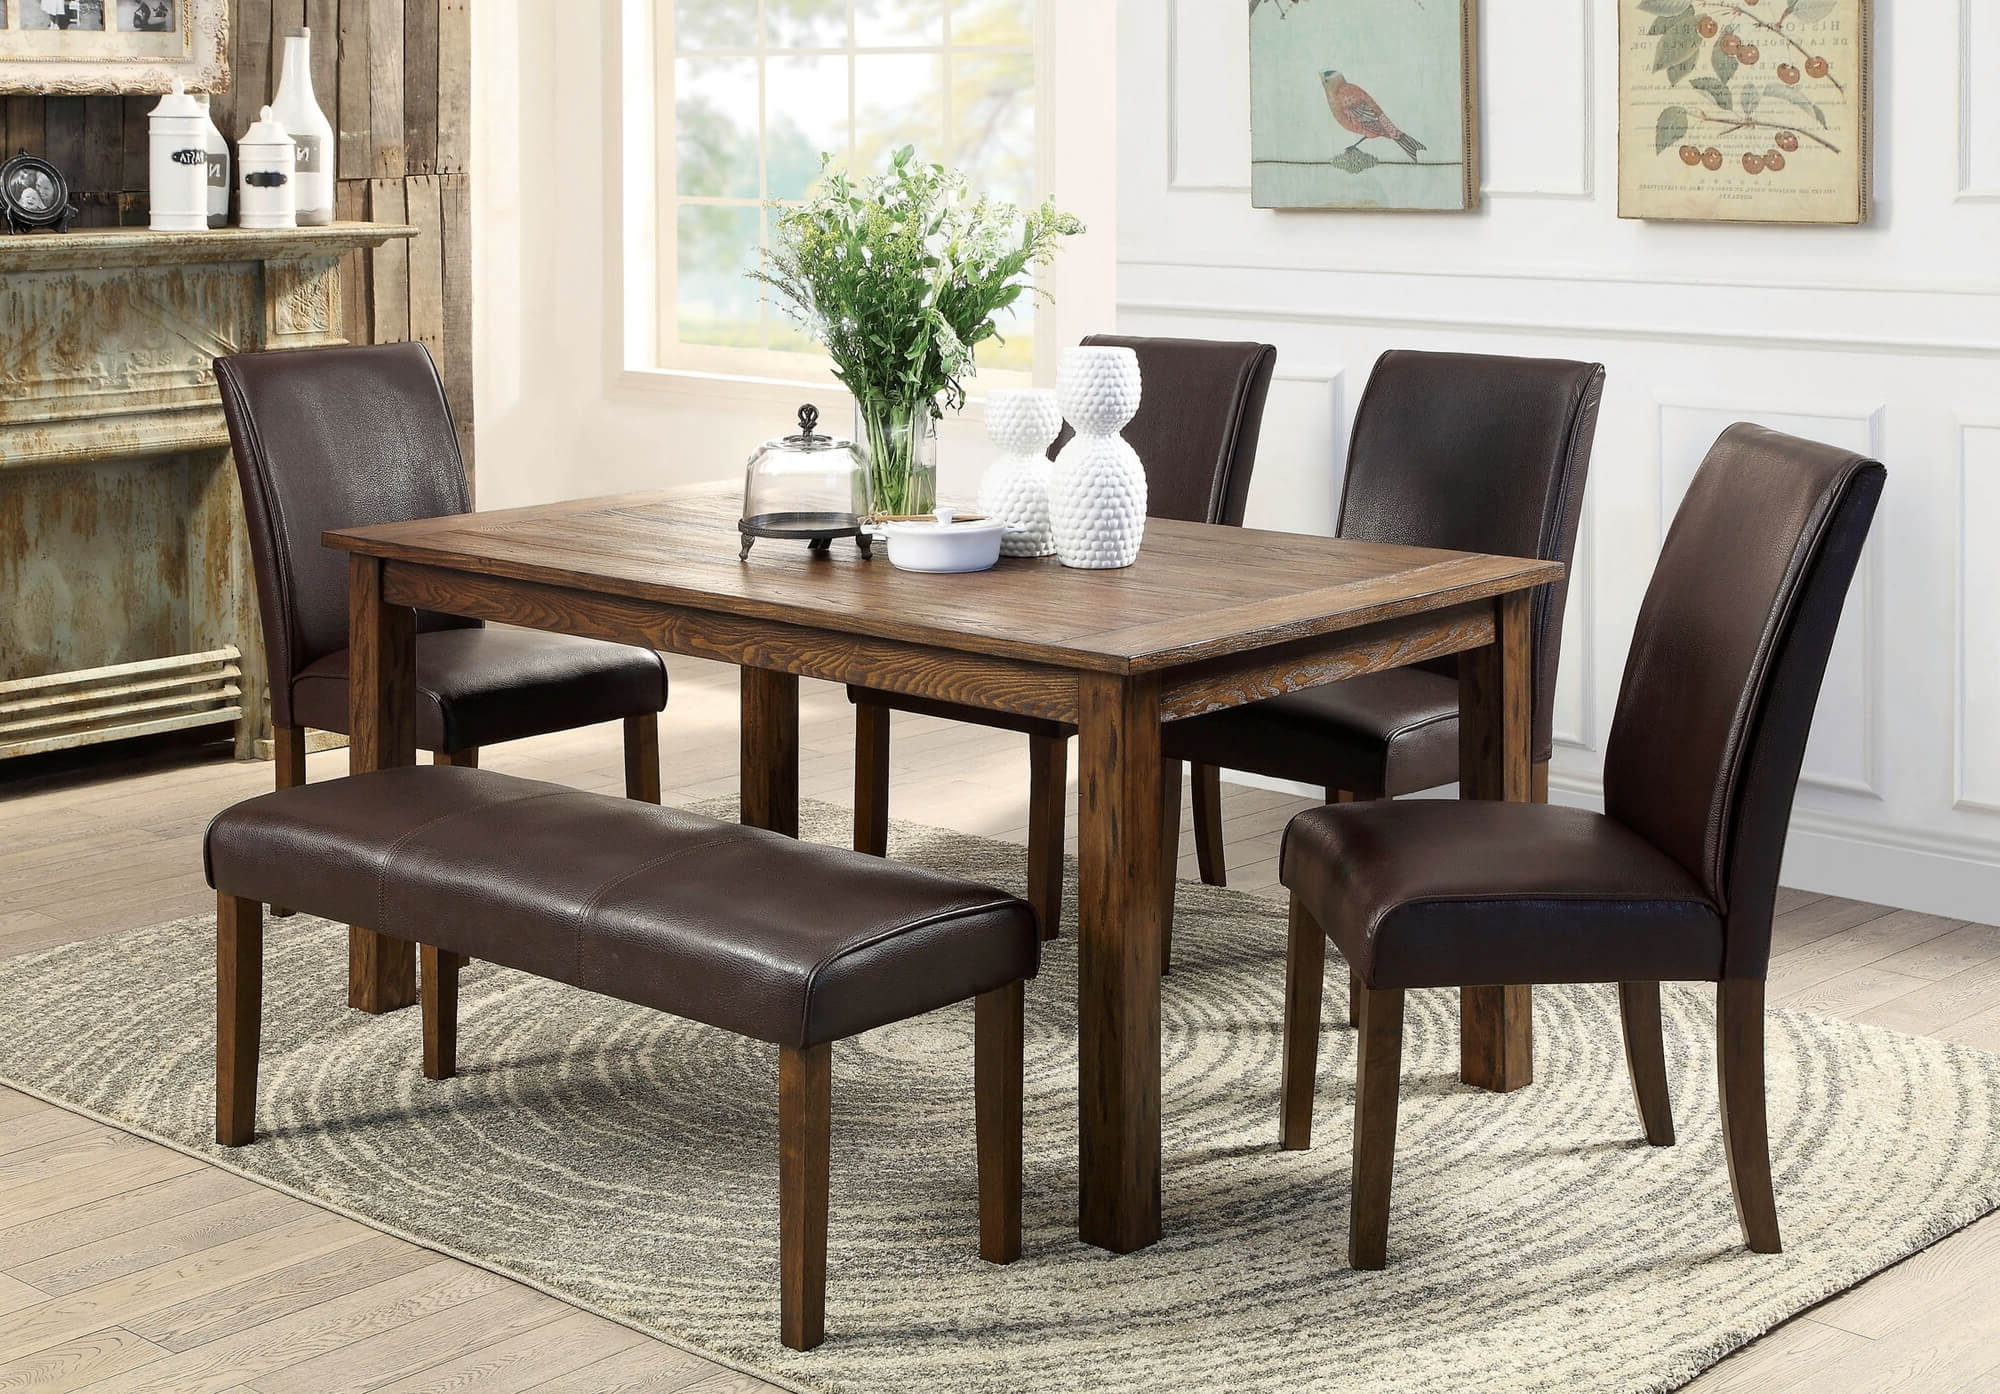 Most Current Contemporary Dining Tables Sets Inside 26 Dining Room Sets (Big And Small) With Bench Seating (2018) (View 14 of 25)